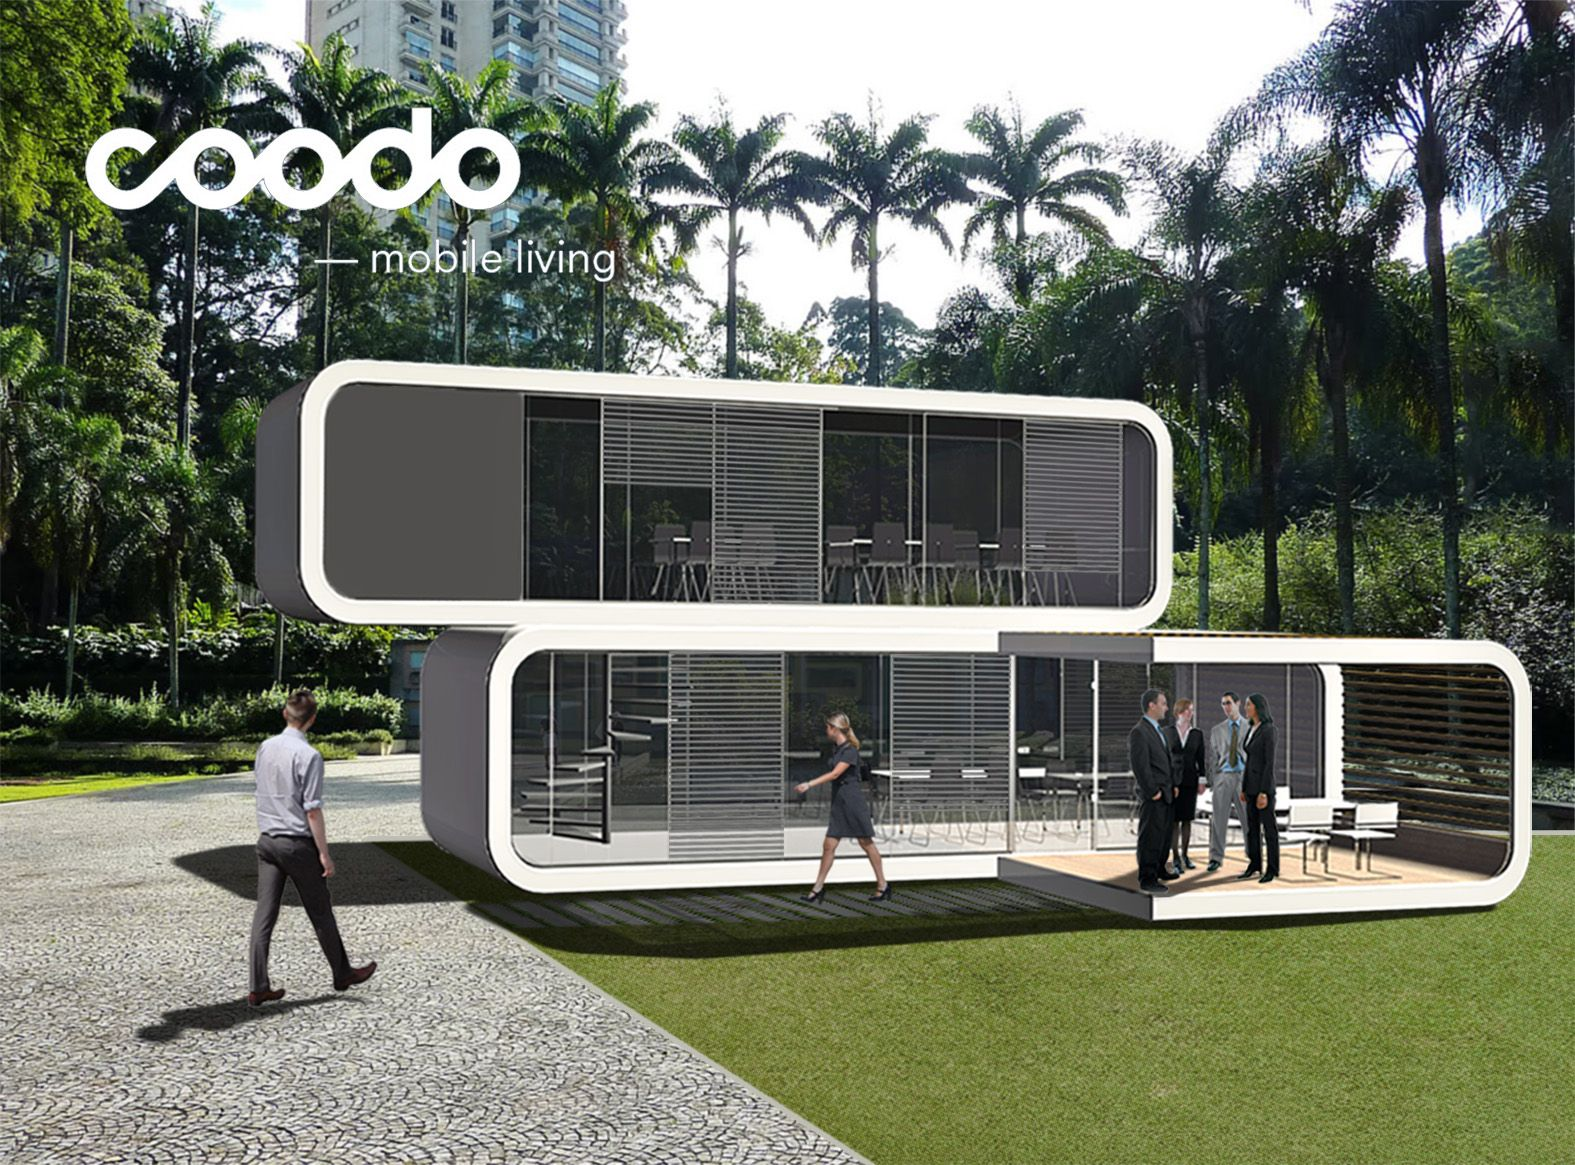 coodo - mobile living | coodo renderings | pinterest | tiny houses